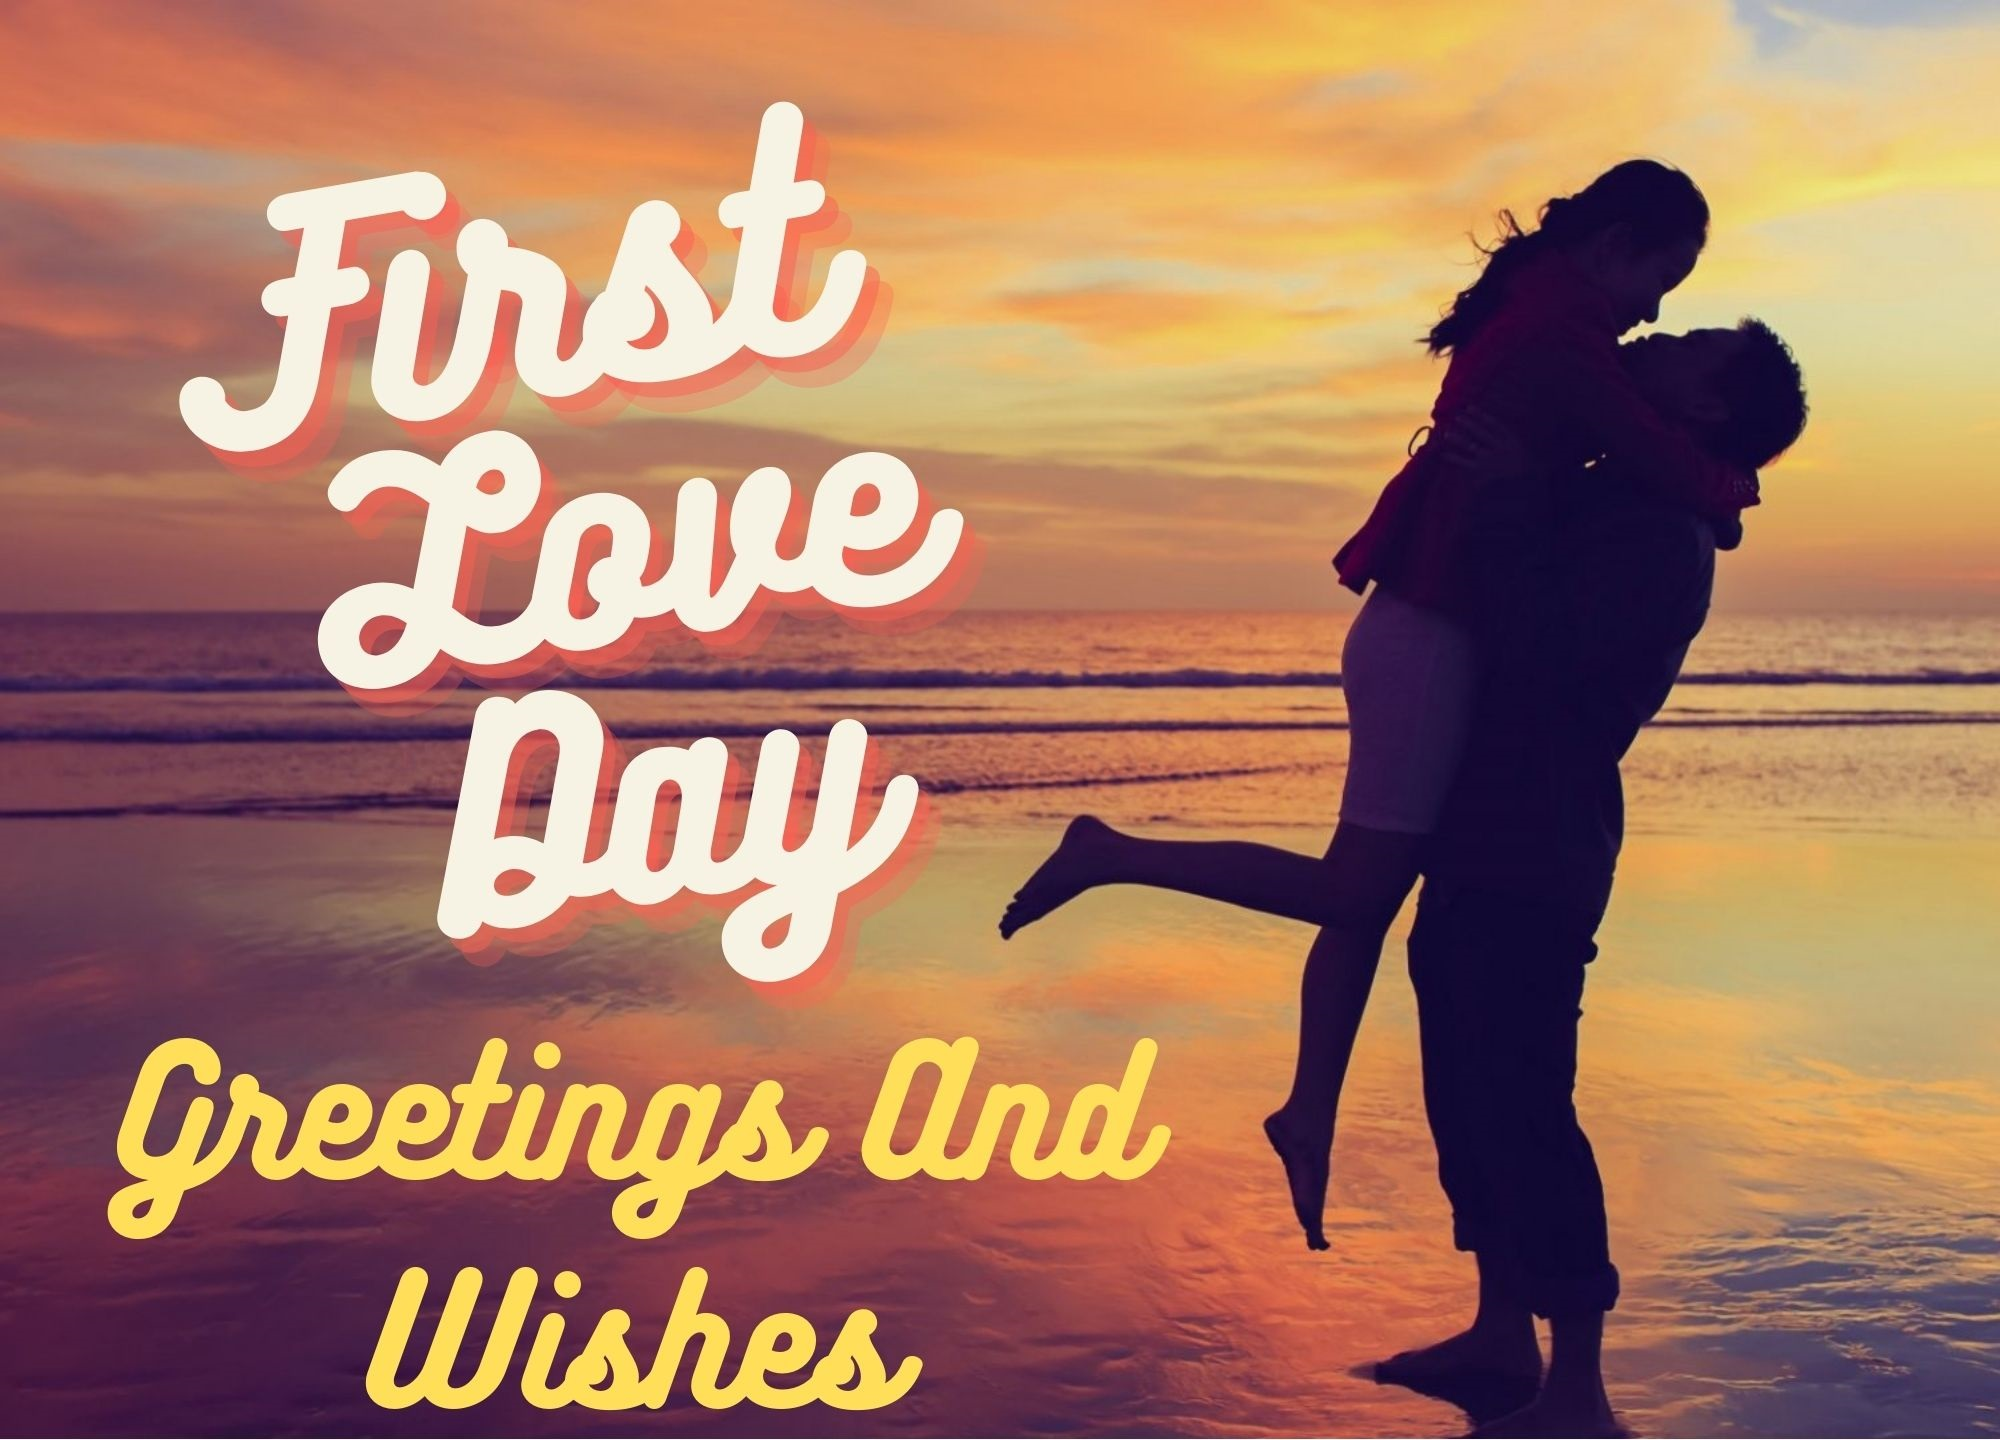 First Love Day Greetings And Wishes